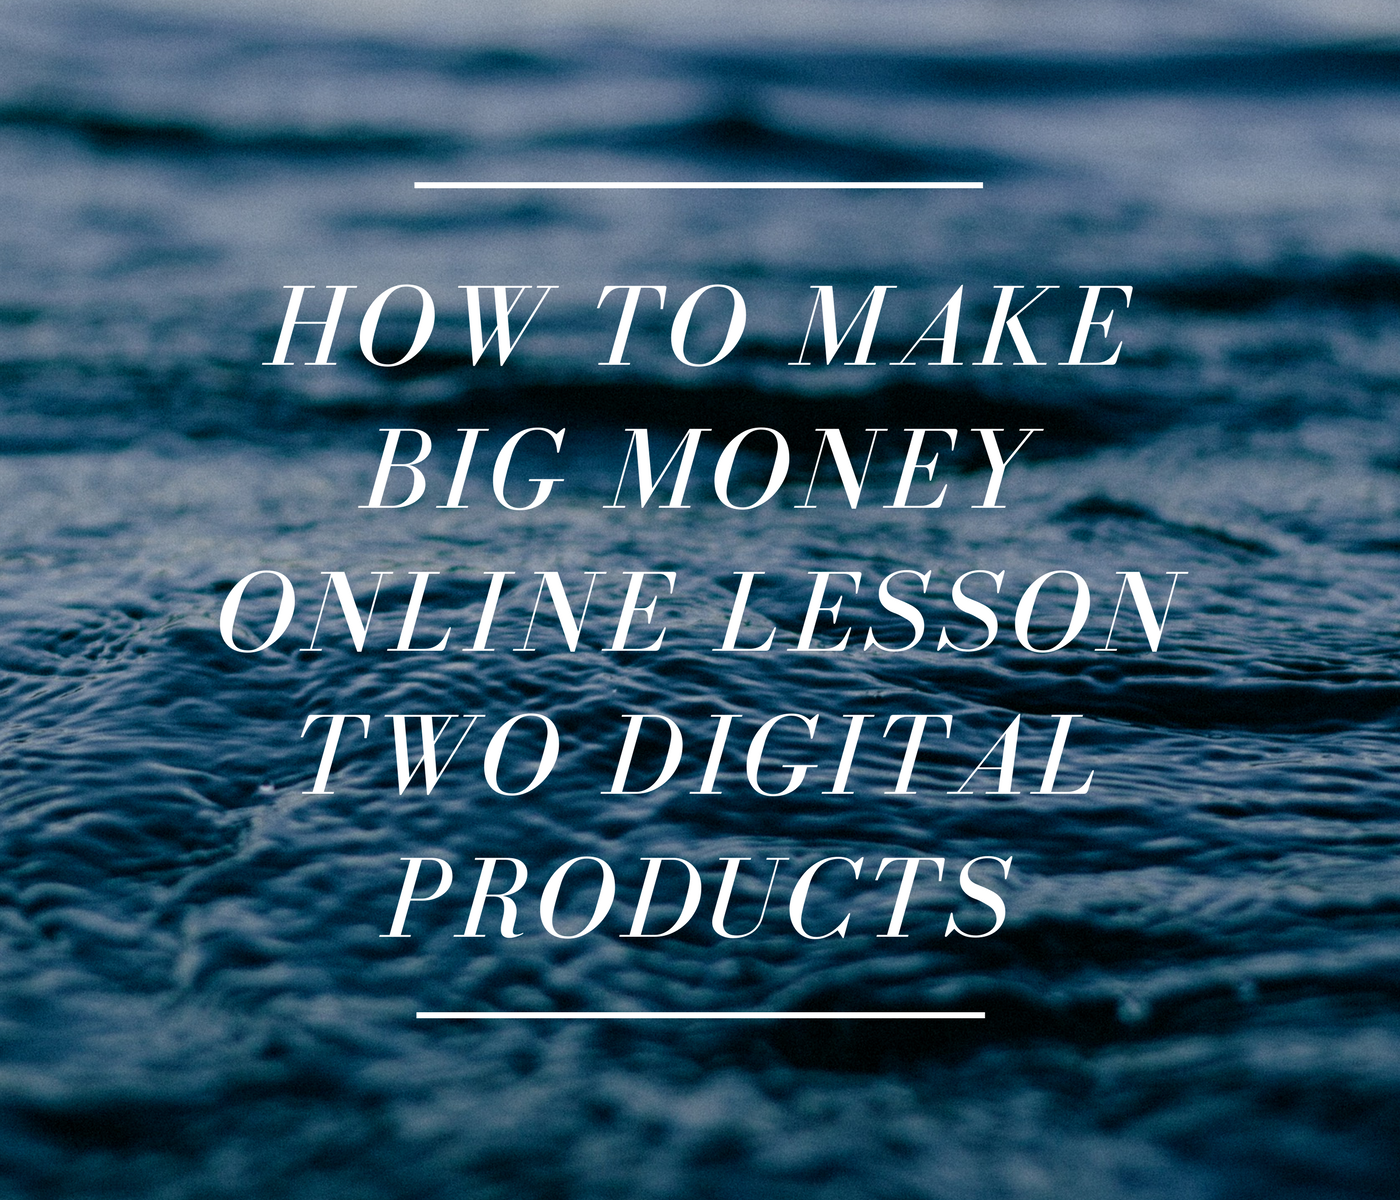 How to Make Big Money Online Lesson Two Digital Products